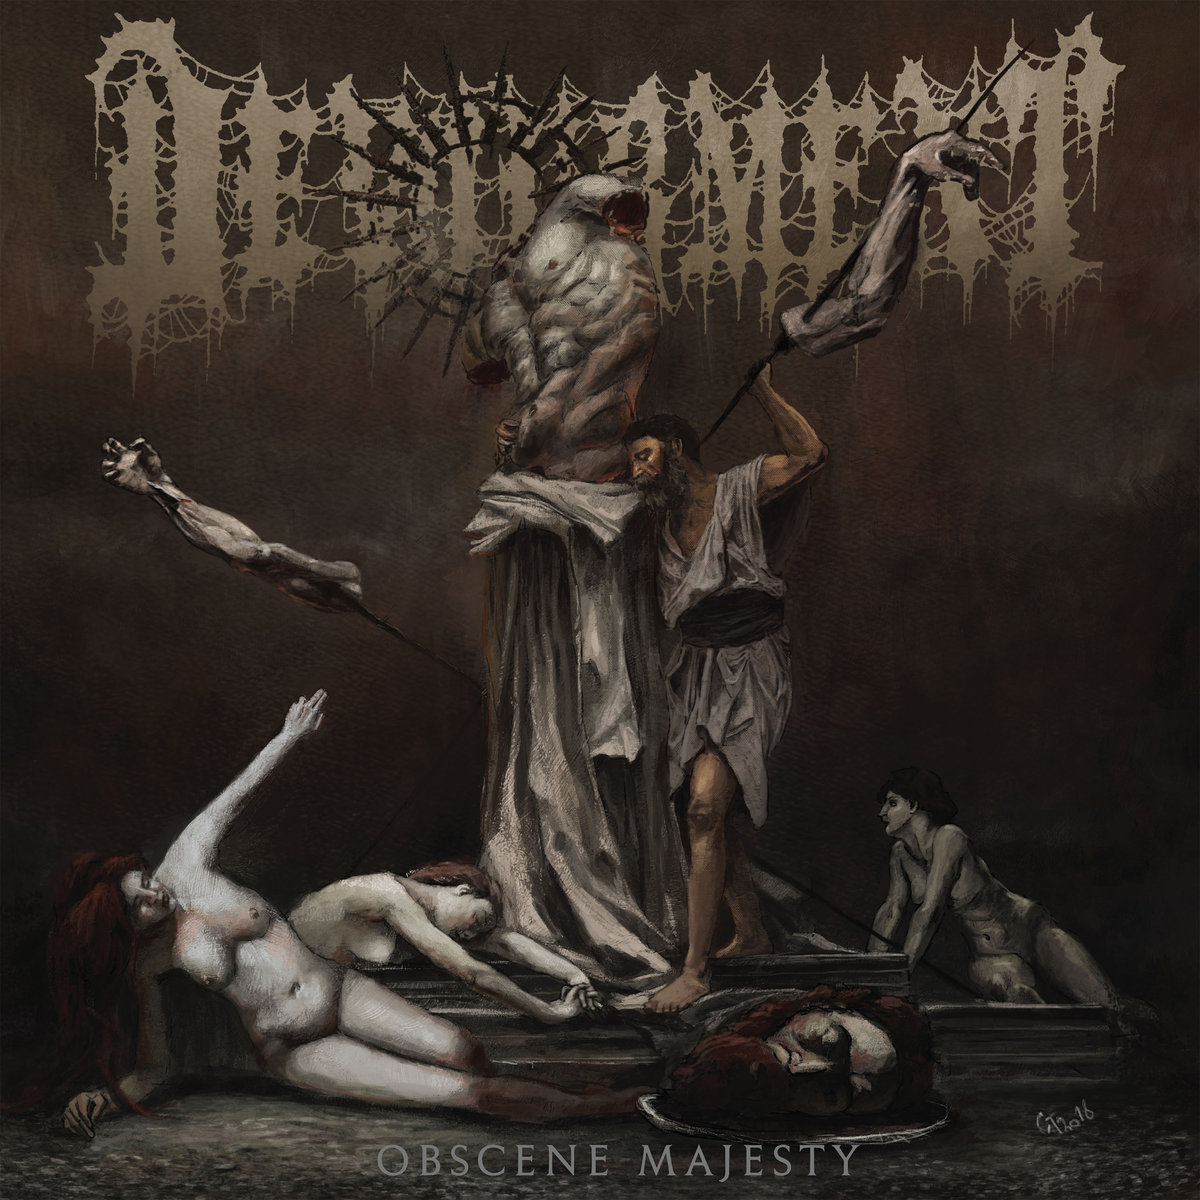 DEVOURMENT To Release Fifth Full-Length, Obscene Majesty, August 16th Via Relapse Records